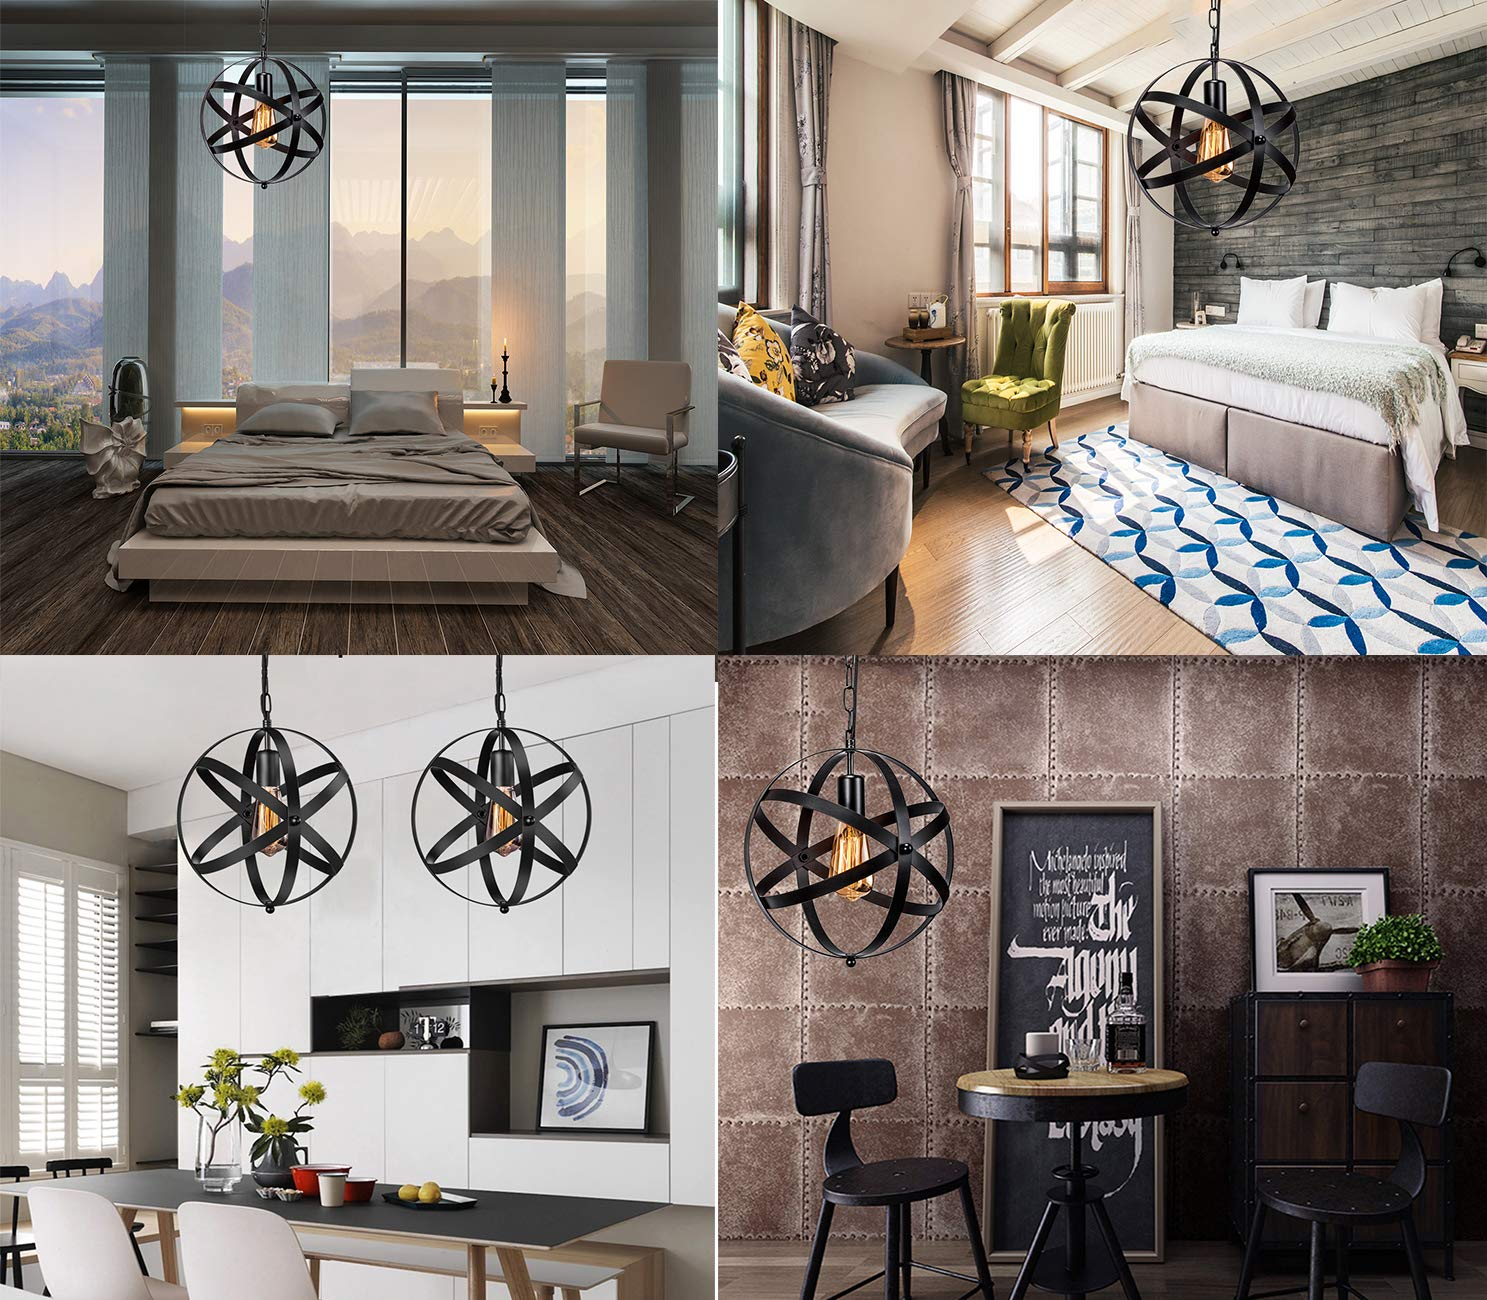 Industrial Plug in Pendant Light INNOCCY E26 E27 Industrial Hanging Light Metal Globe Vintage Pendant Light Fixture with 14.8Ft Hanging Cord and ON//OFF Switch  1 Pack